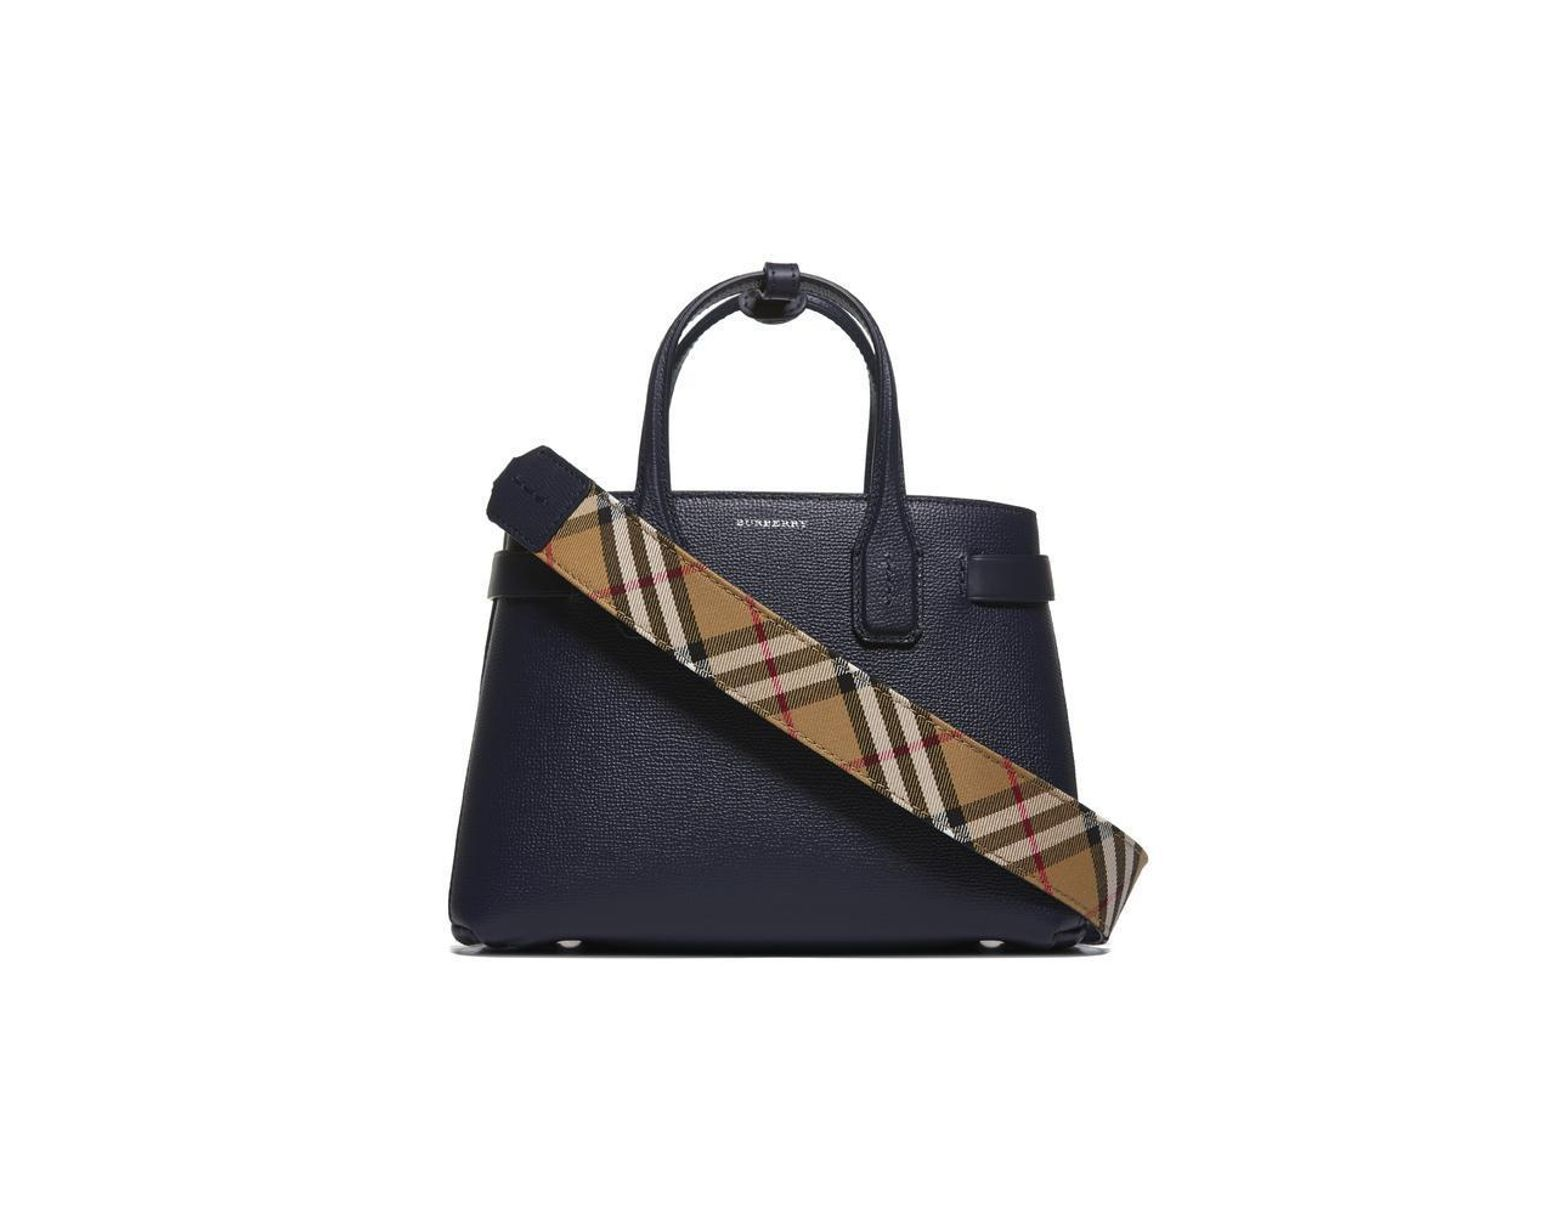 6a851cdd16b3 Women's Regency Blue Check Vintage Banner Grained Leather Tote Bag